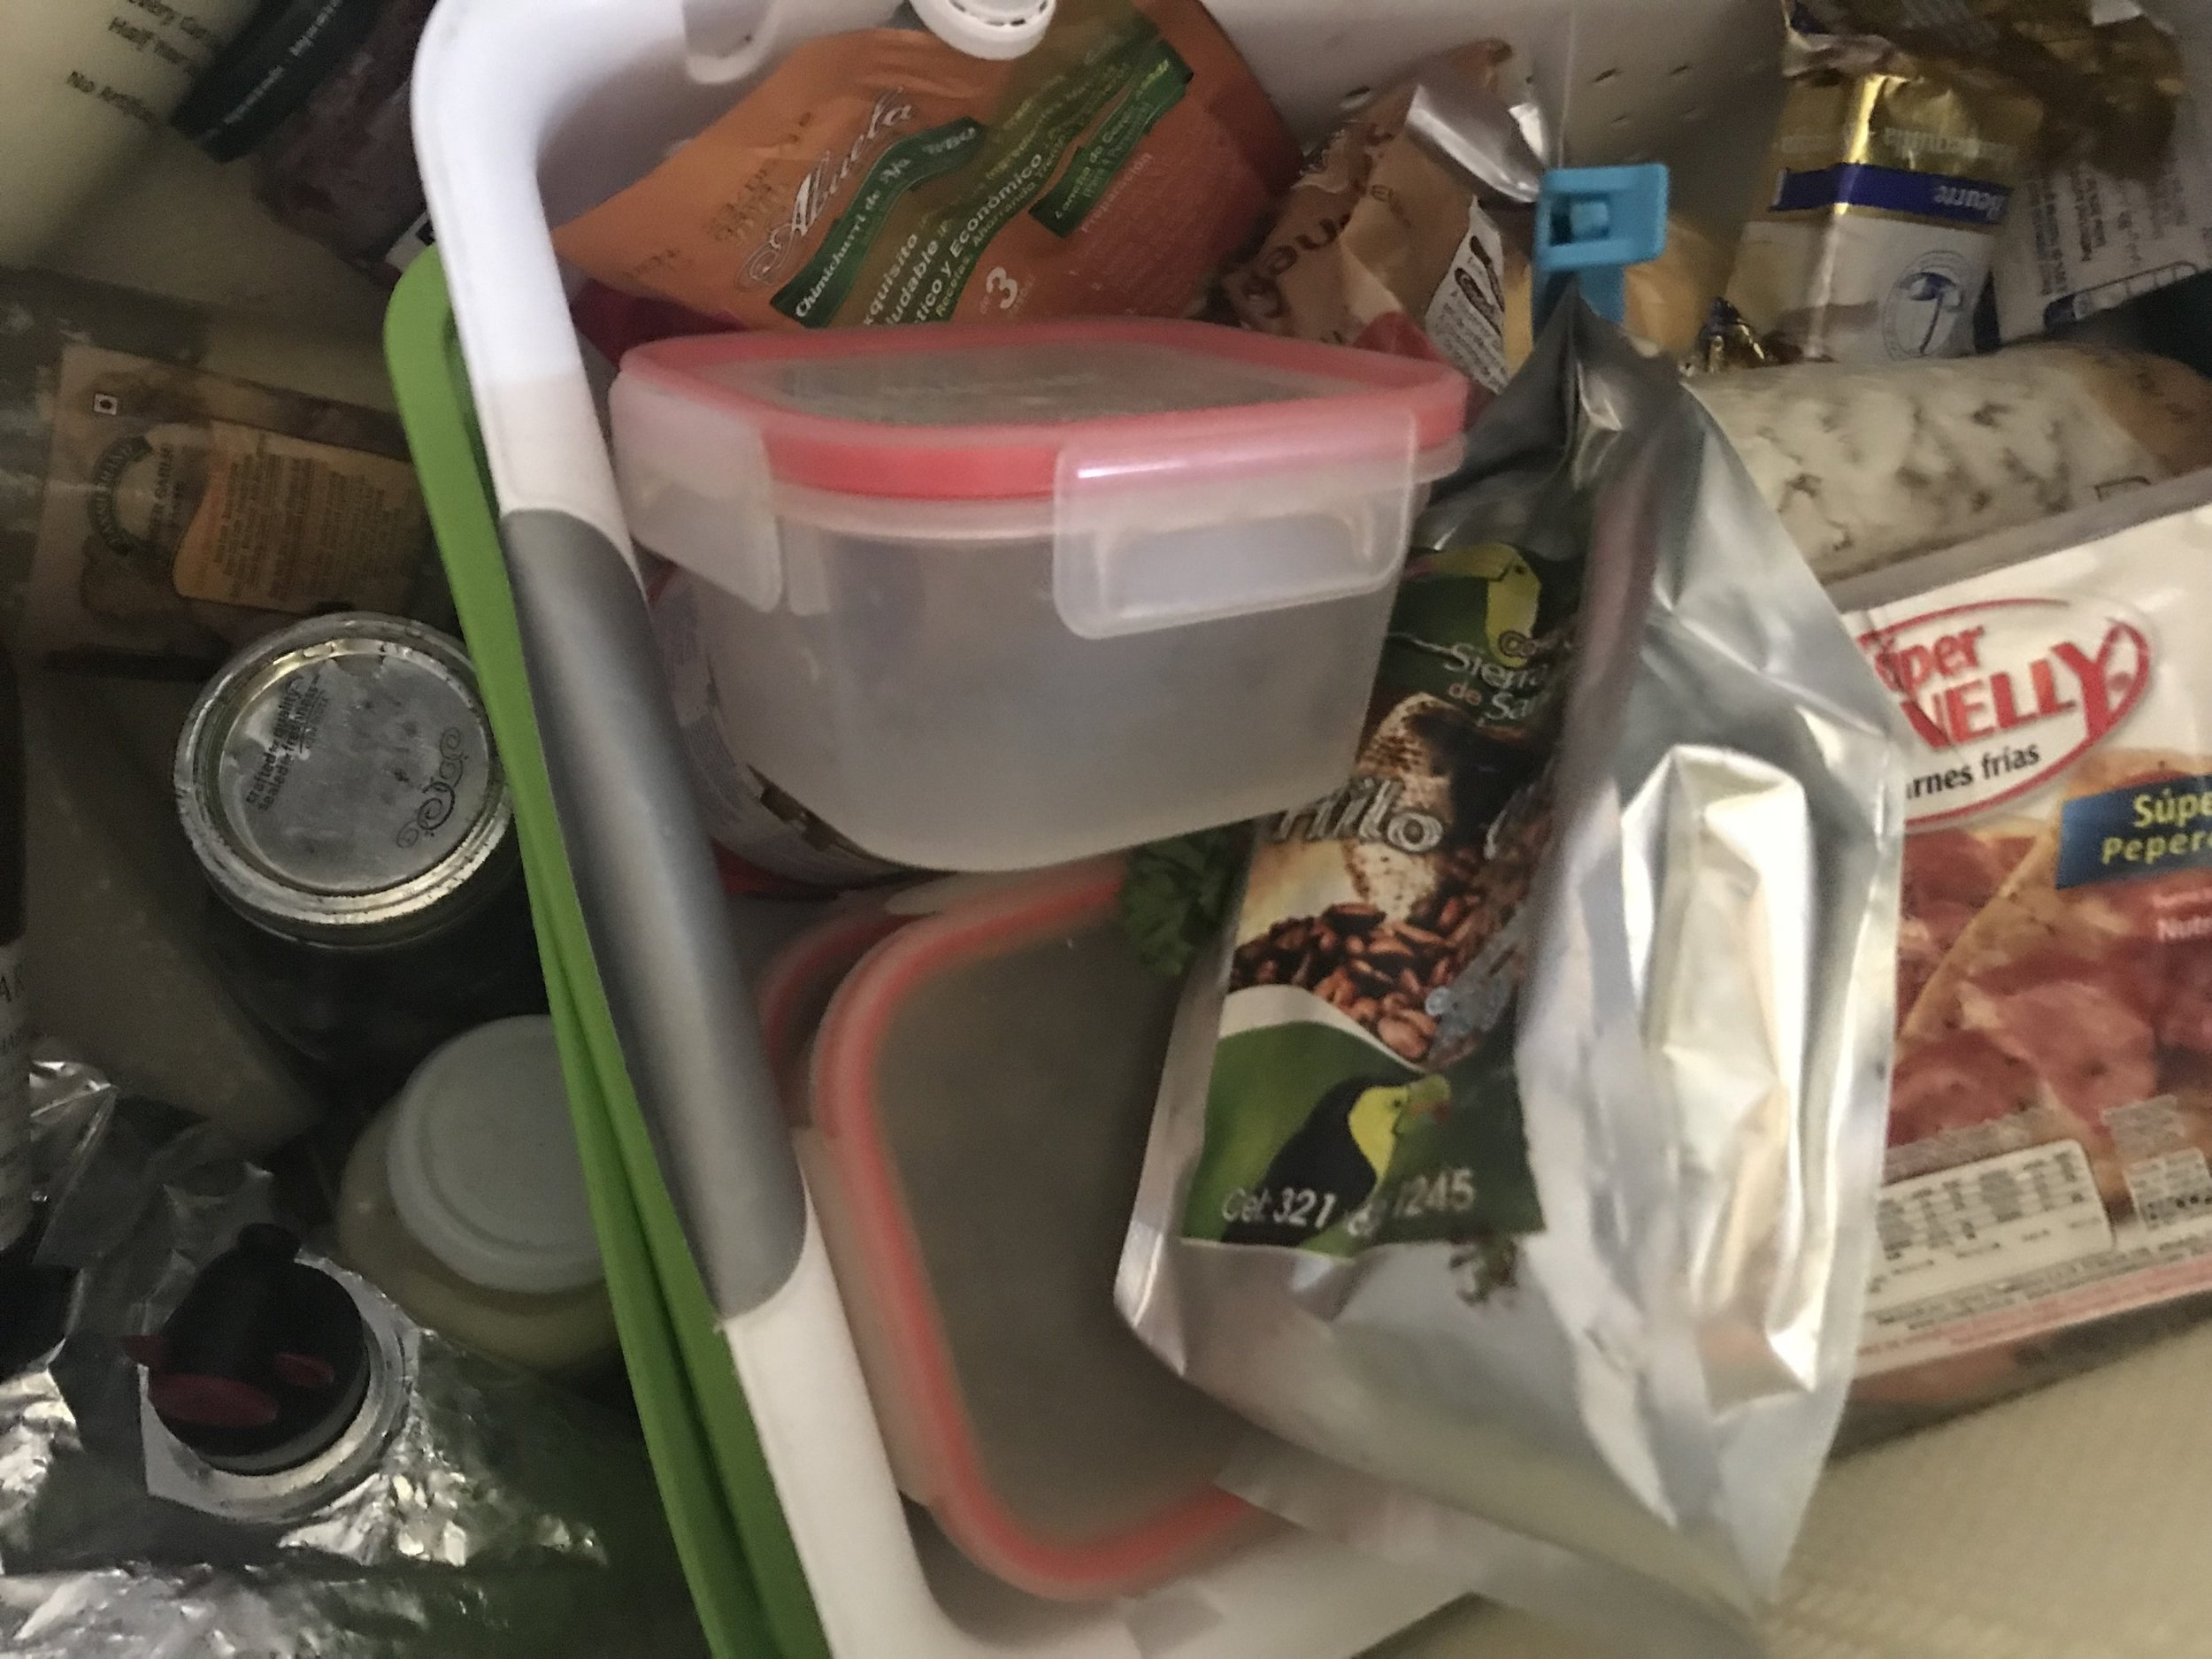 Essentially small laundry baskets (way small) within the fridge!